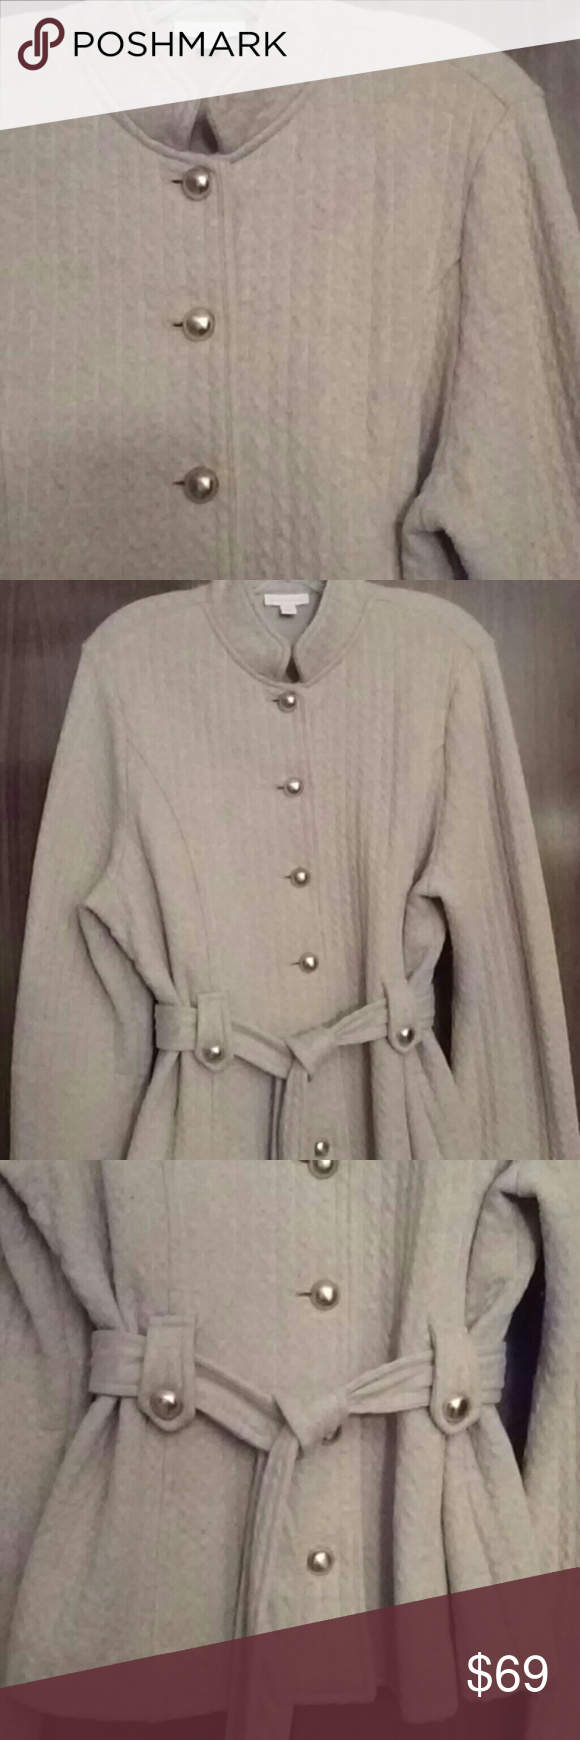 Charter Club Sweater Jacket Light tan sweater jacket from Charter ...